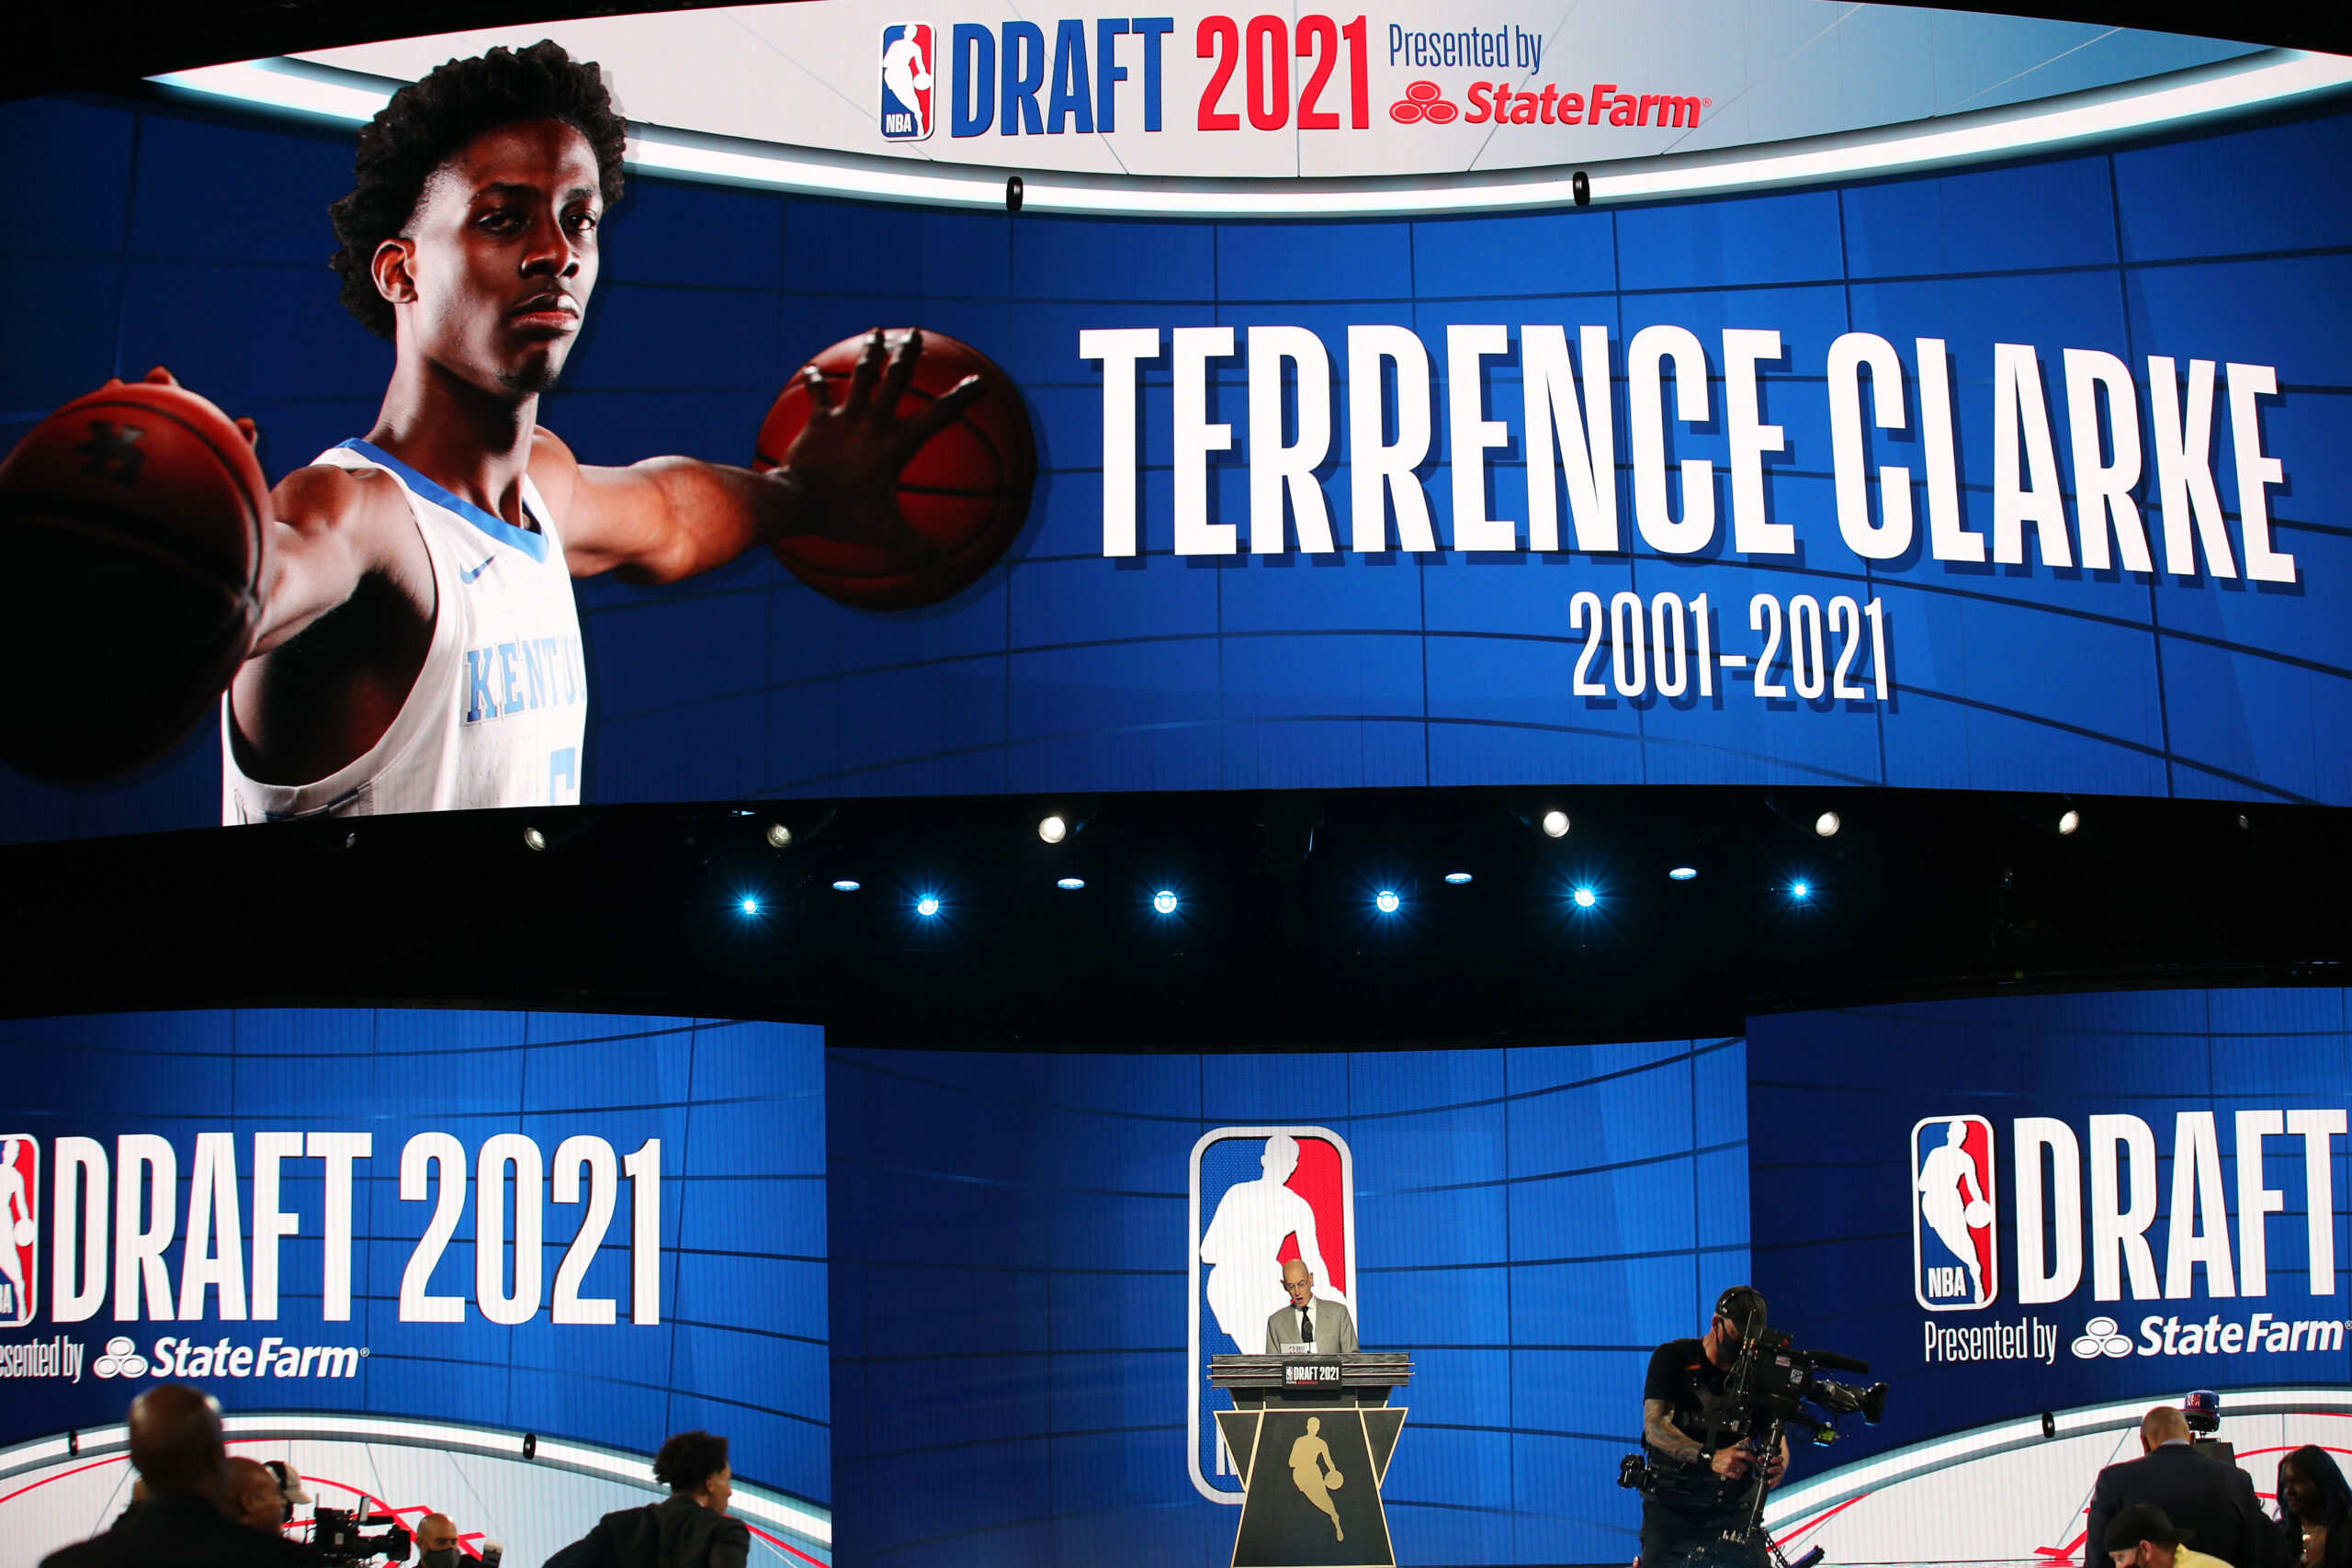 NBA Draft Honors Terrence Clarke, 19-Year-Old Kentucky Guard Who Died in Car Accident in April